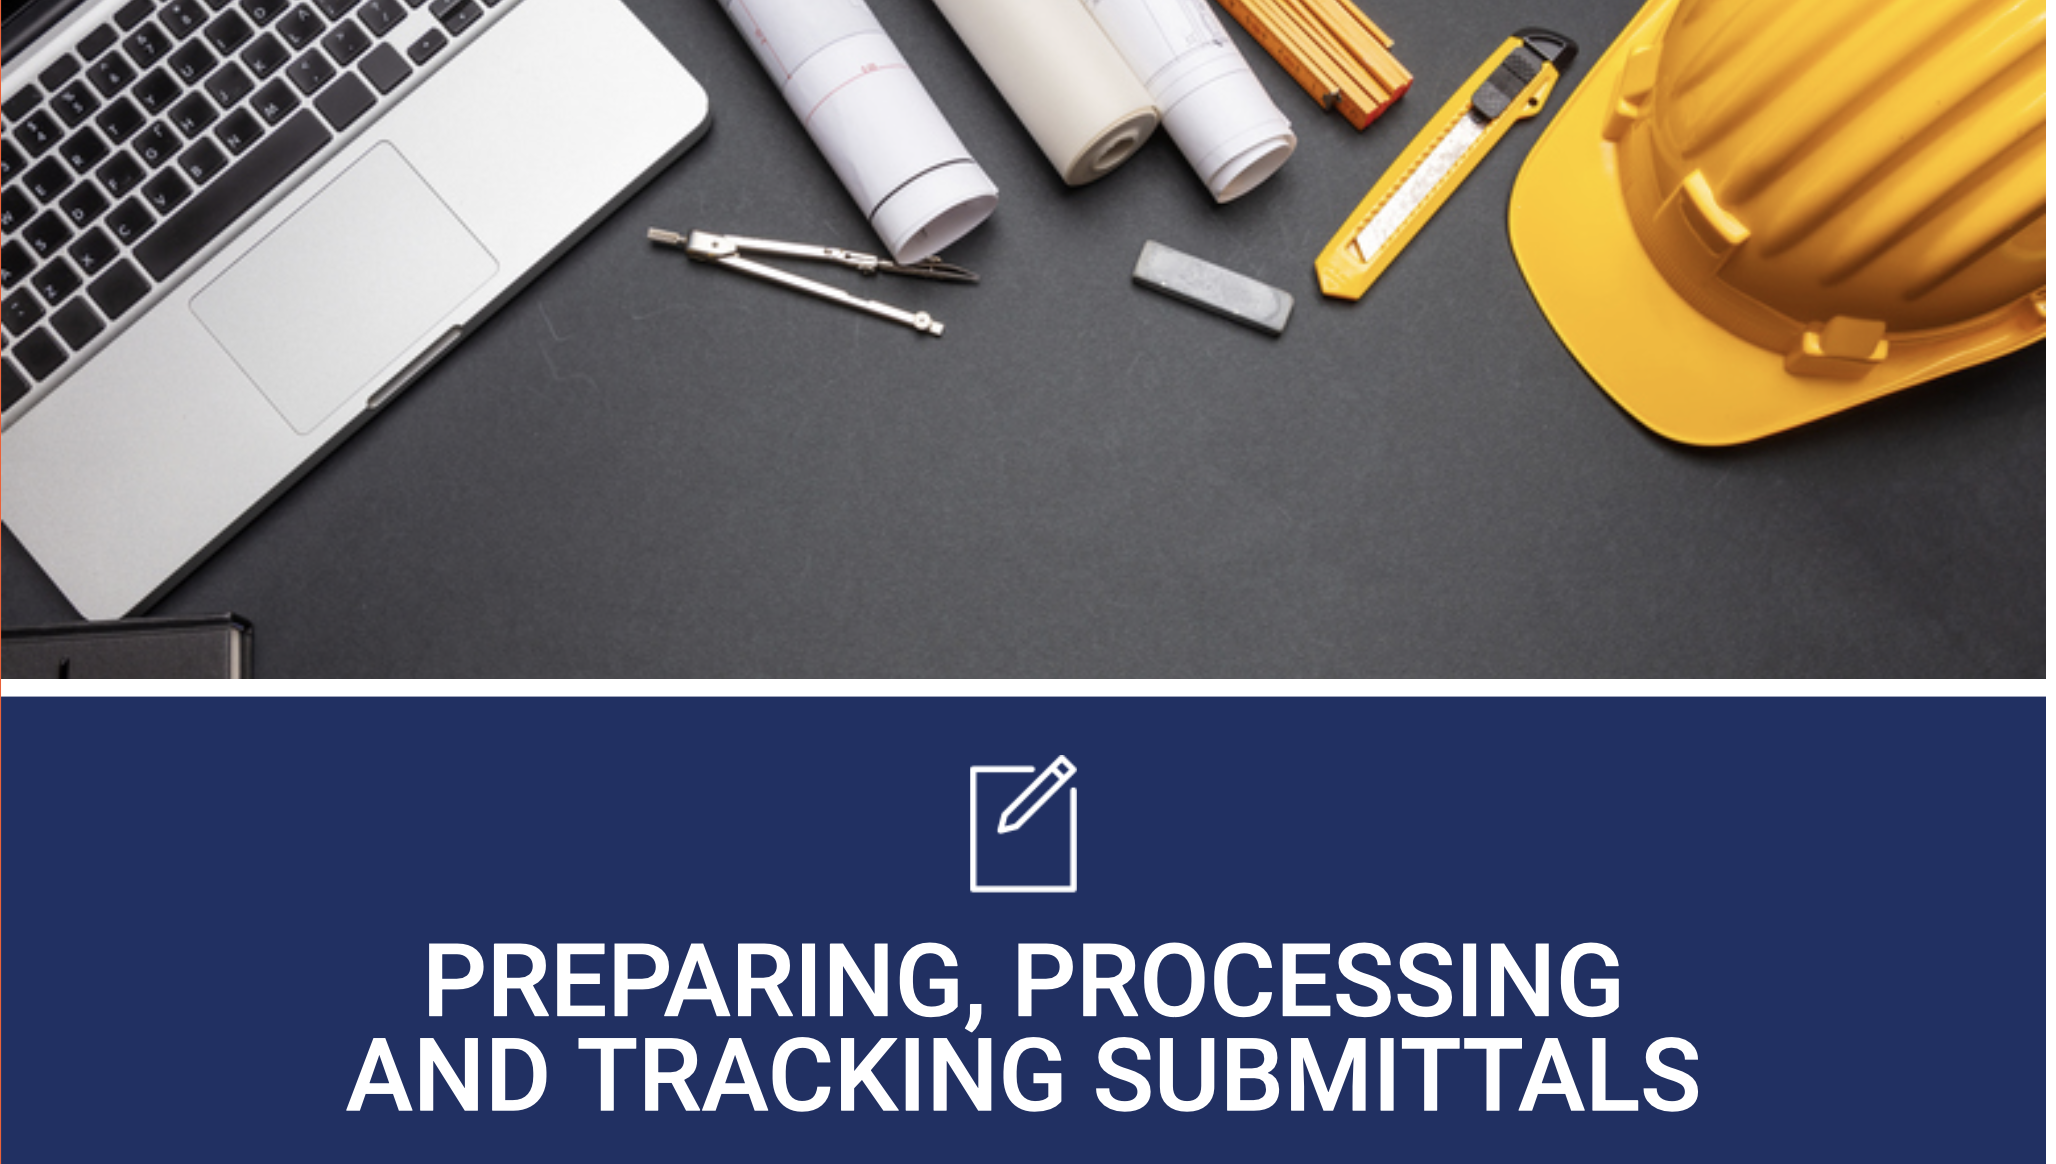 Preparing, Processing and Tracking Submittals Cover Image